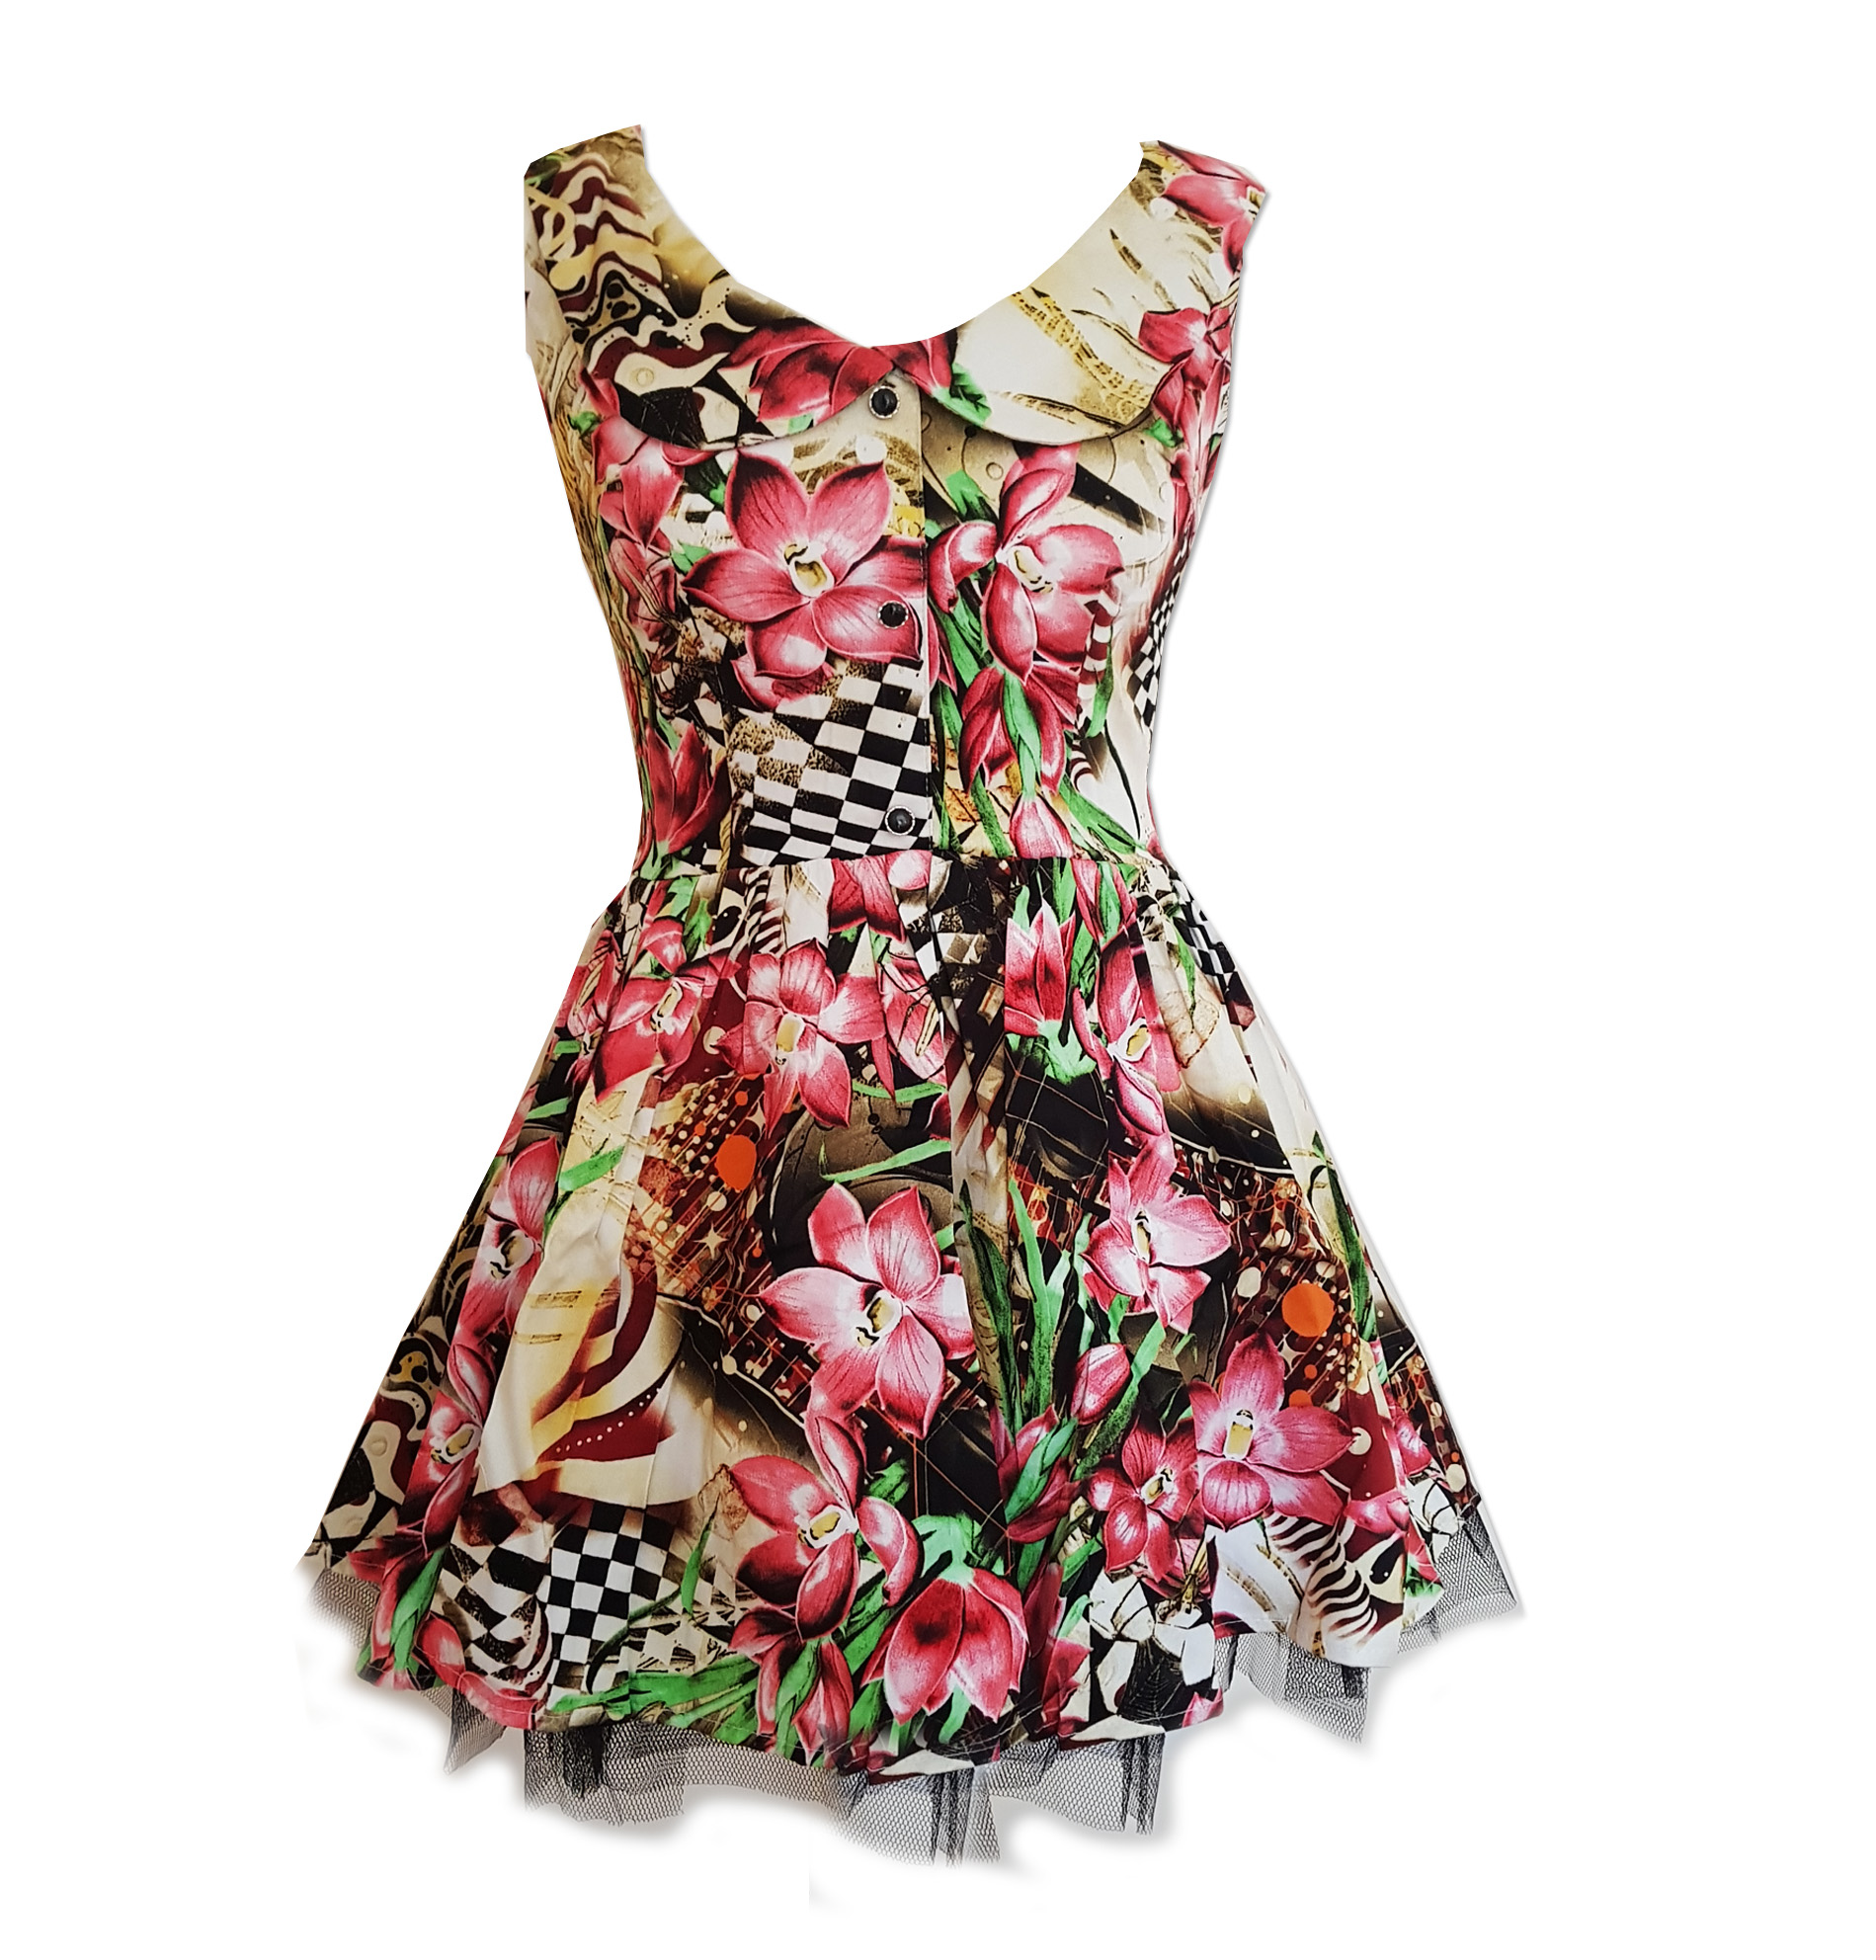 H-amp-R-Hearts-amp-Roses-London-Pink-Mini-Dress-039-Lily-Checkerboard-039-Flowers-All-Sizes thumbnail 7